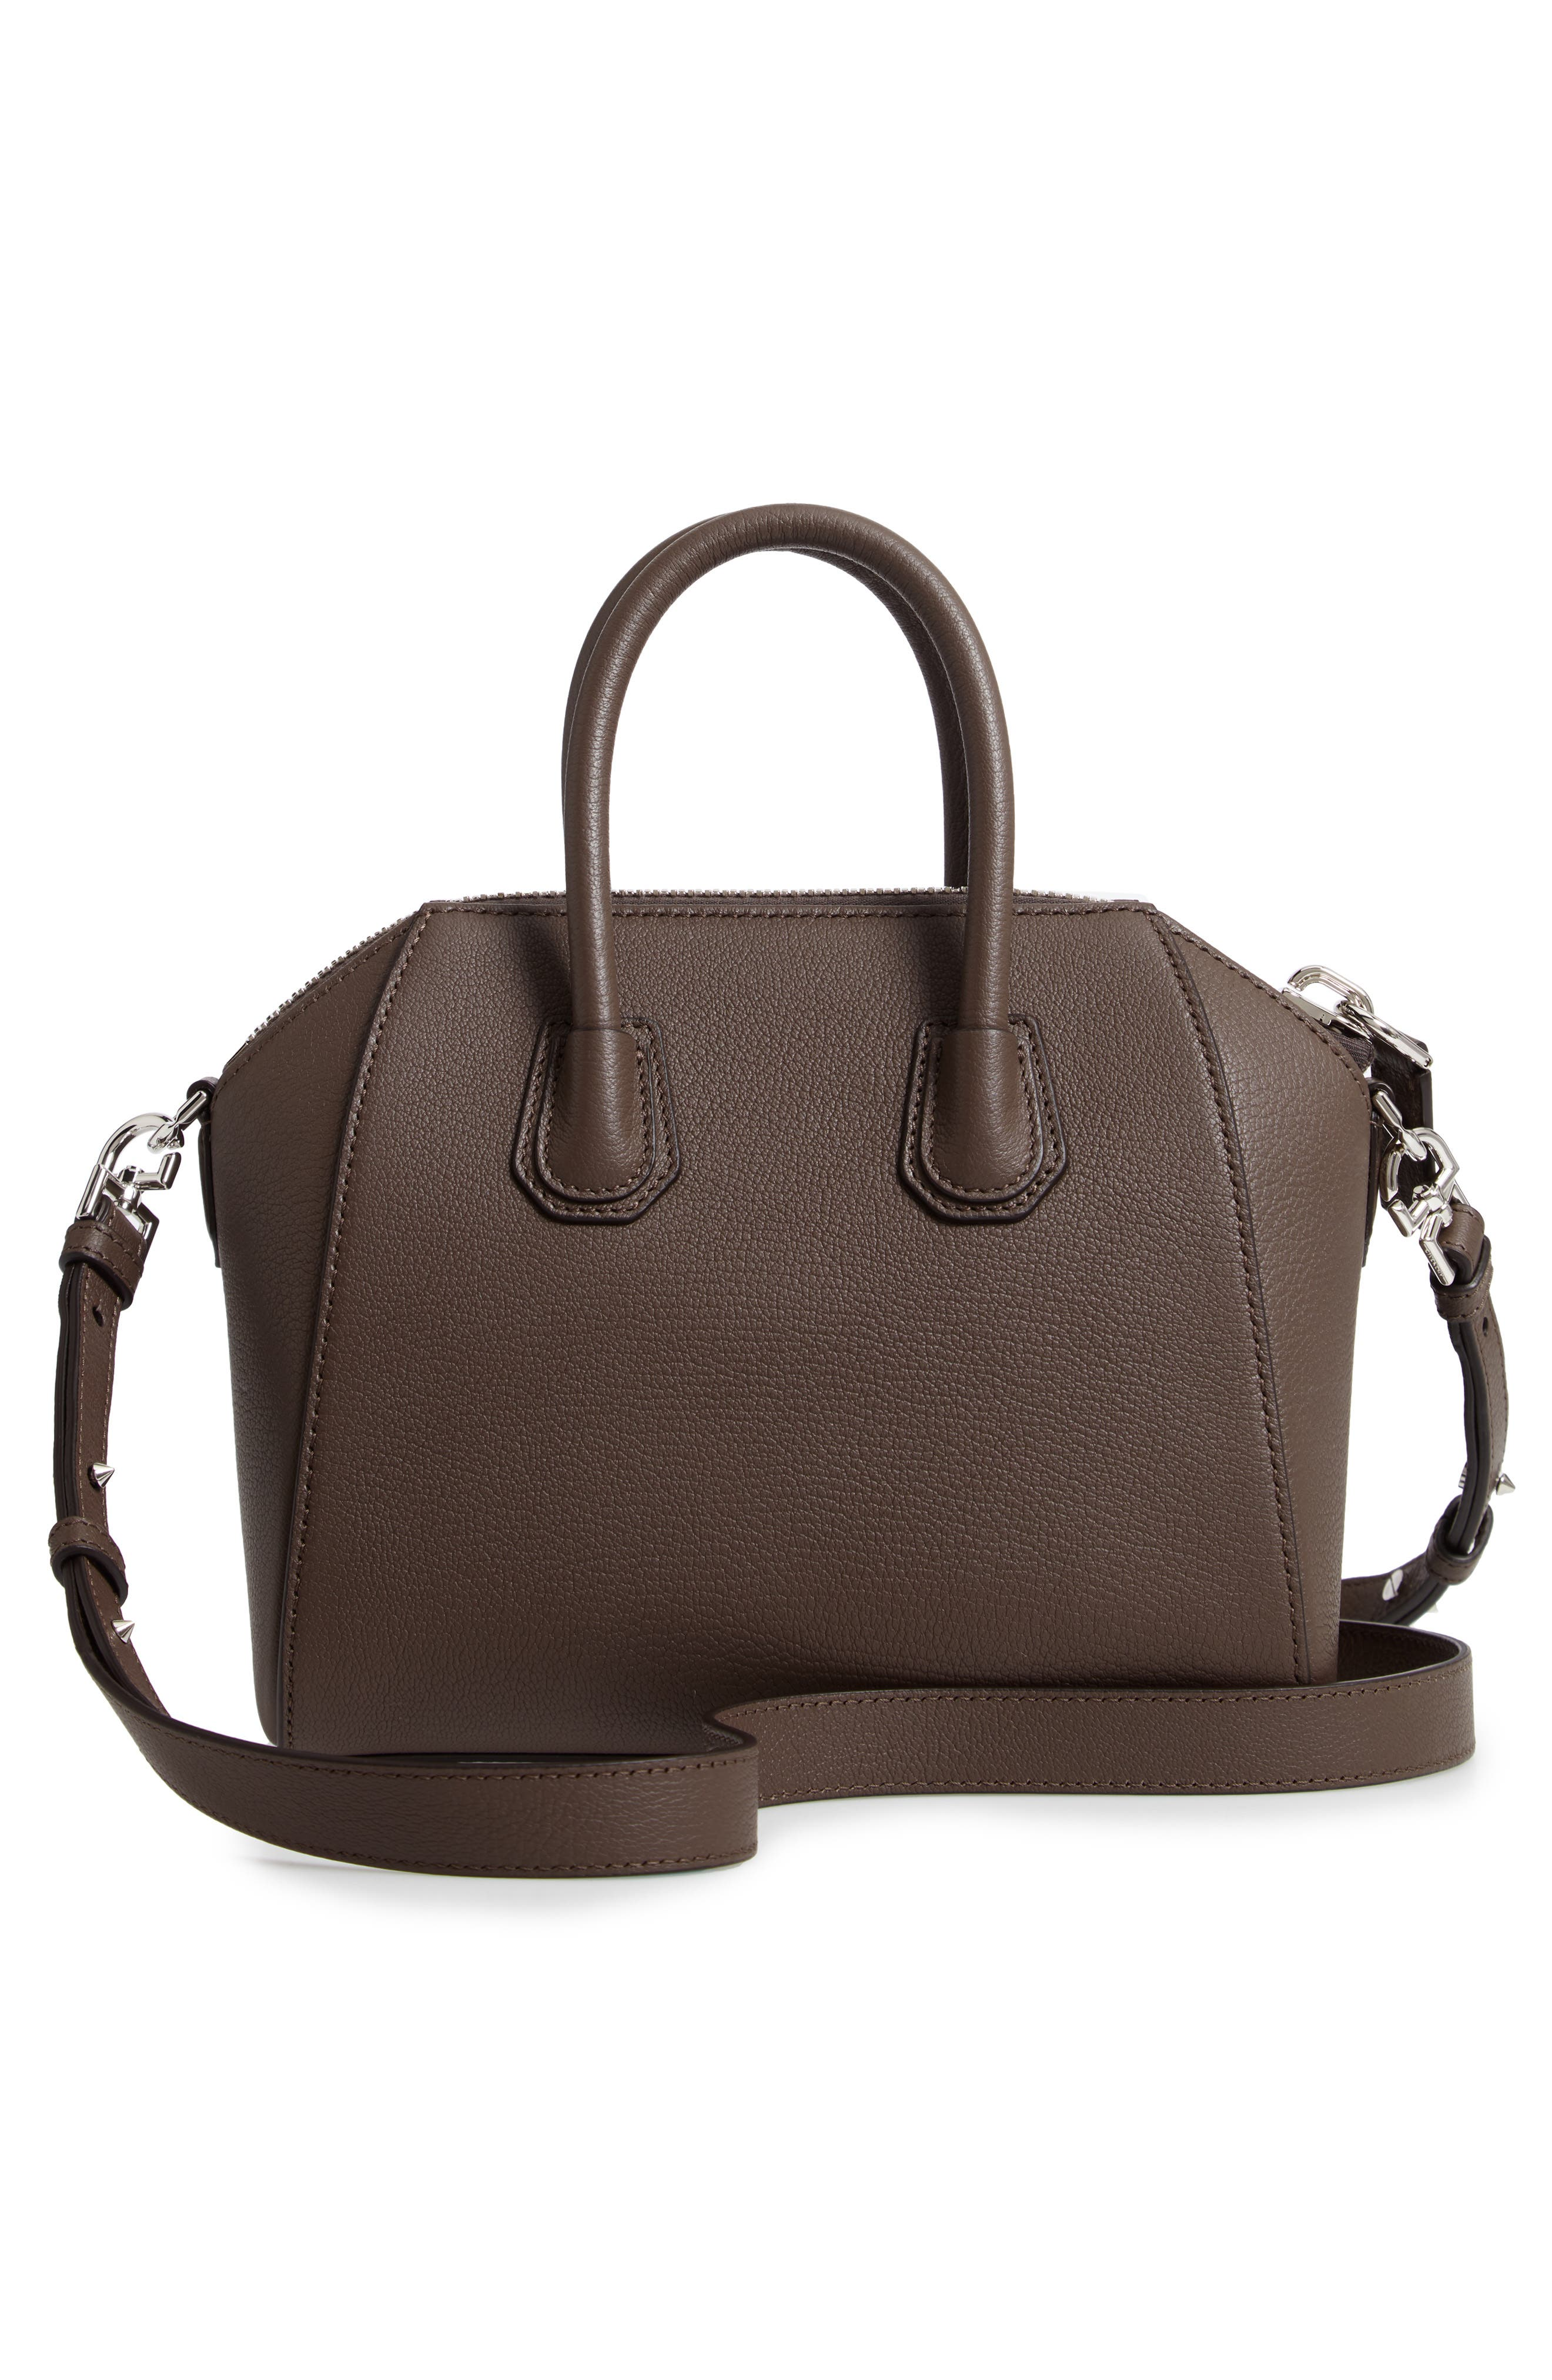 'Mini Antigona' Sugar Leather Satchel,                             Alternate thumbnail 3, color,                             HEATHER GREY